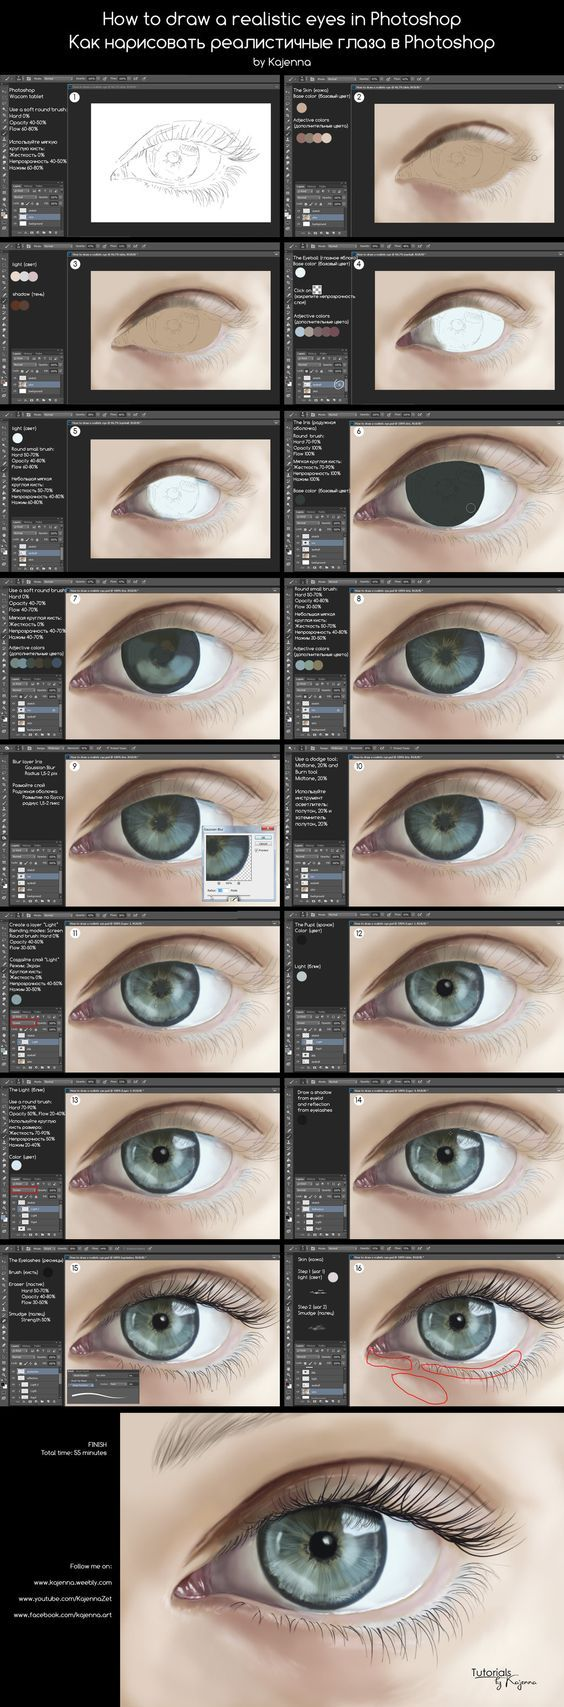 How to draw a realistic eyes in Photoshop by Kajenna.deviantart.com on @deviantART: